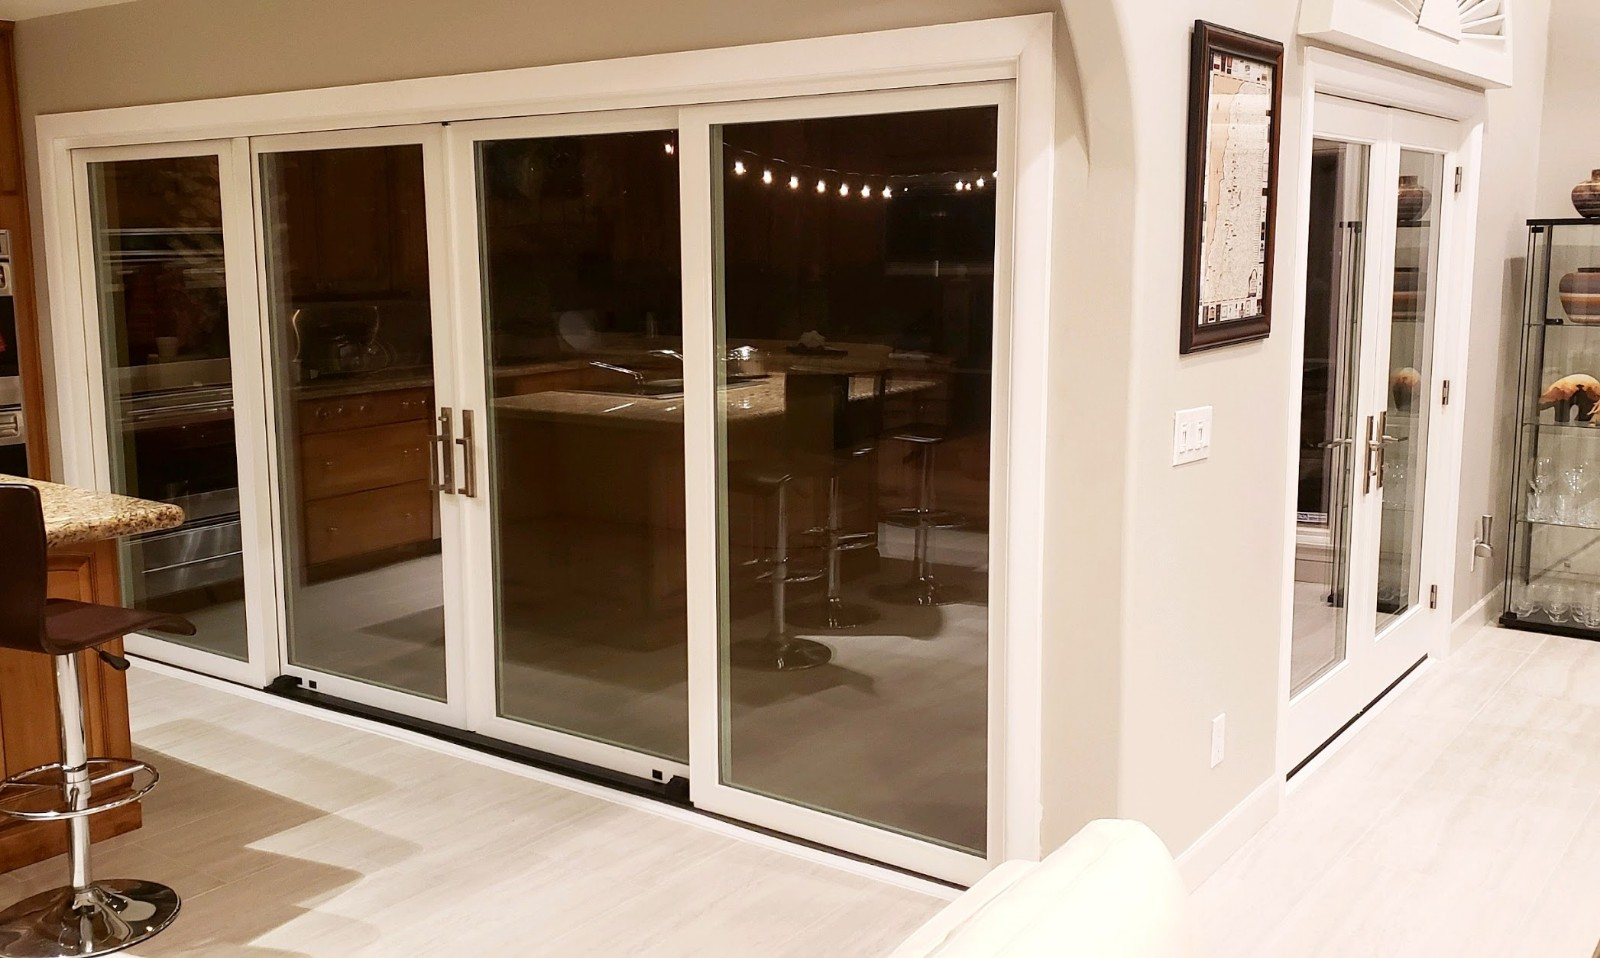 Arizona Window and Door in Scottsdale and Tucson showing white panel doors with large windows